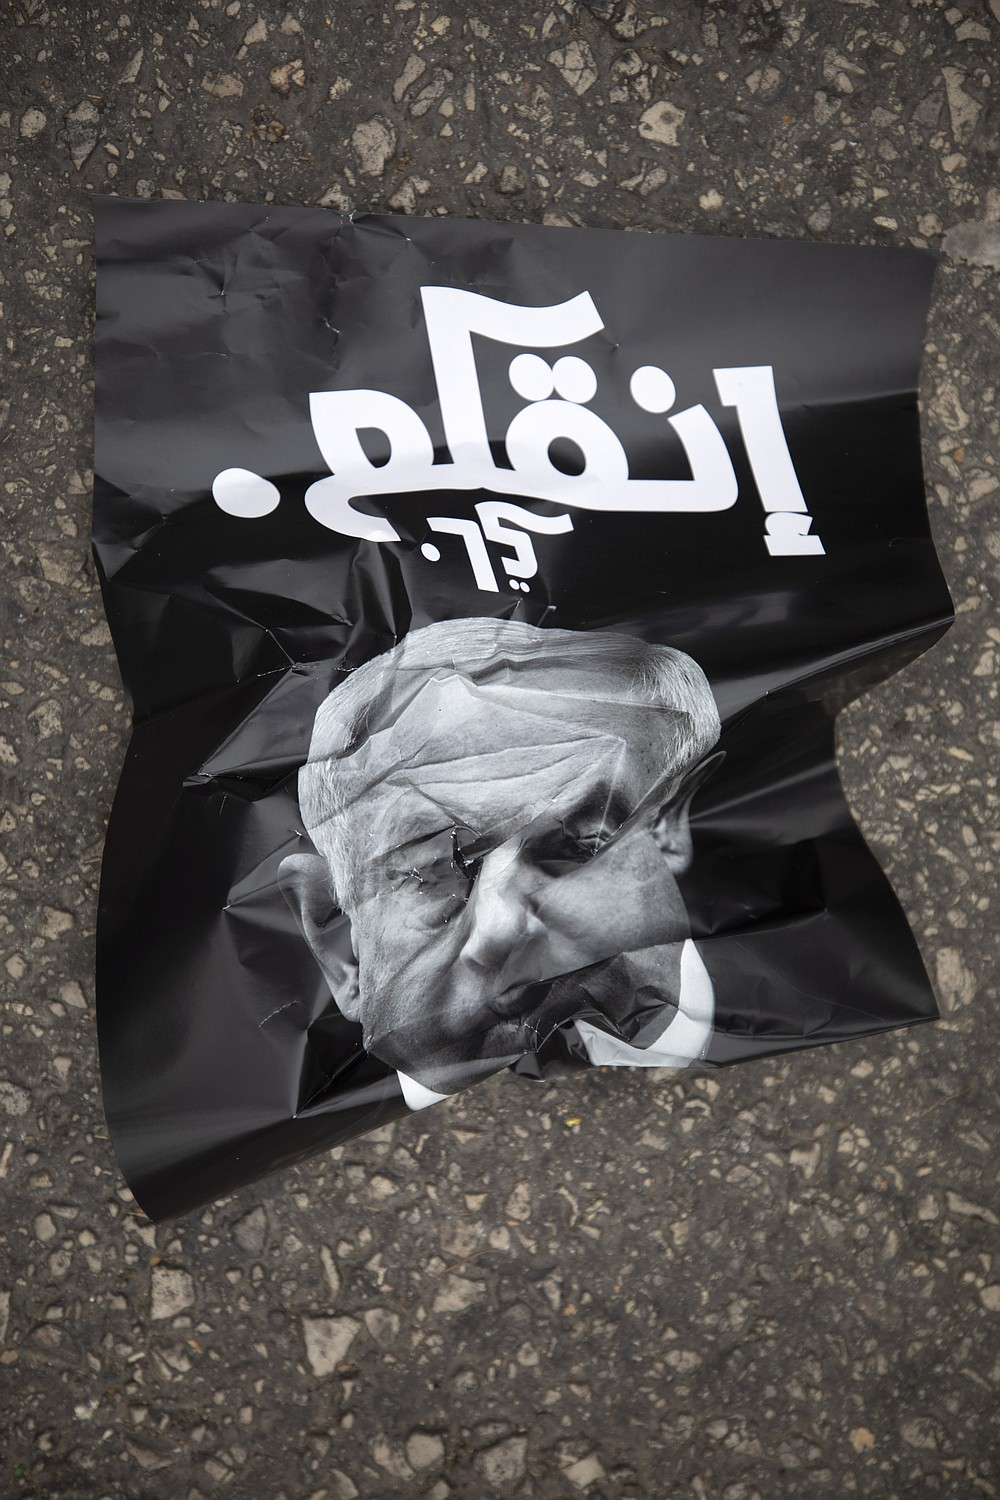 """A poster that reads, """"leave,"""" lies on the ground during a demonstration against a visit by Israeli Prime Minister Benjamin Netanyahu to the northern Arab city of Nazareth, Israel, Wednesday, Jan. 13, 2021. Netanyahu, who has spent much of his long career casting Israel's Arab minority as a potential fifth column led by terrorist sympathizers, is now openly courting their support as he seeks reelection in the country's fourth vote in less than two years. (AP Photo/Sebastian Scheiner)"""